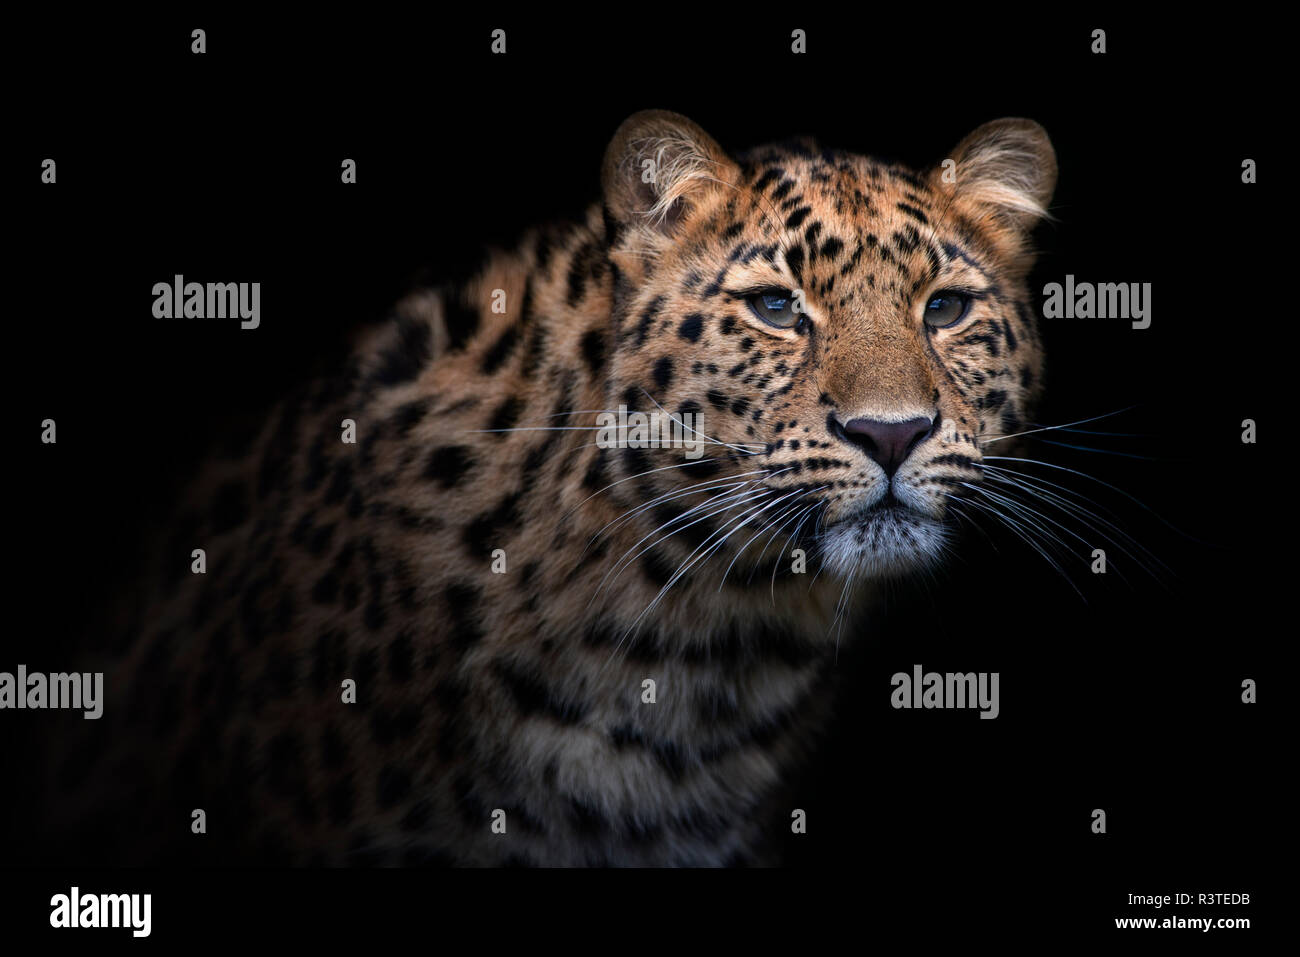 Portrait of Amur leopard in front of black background - Stock Image